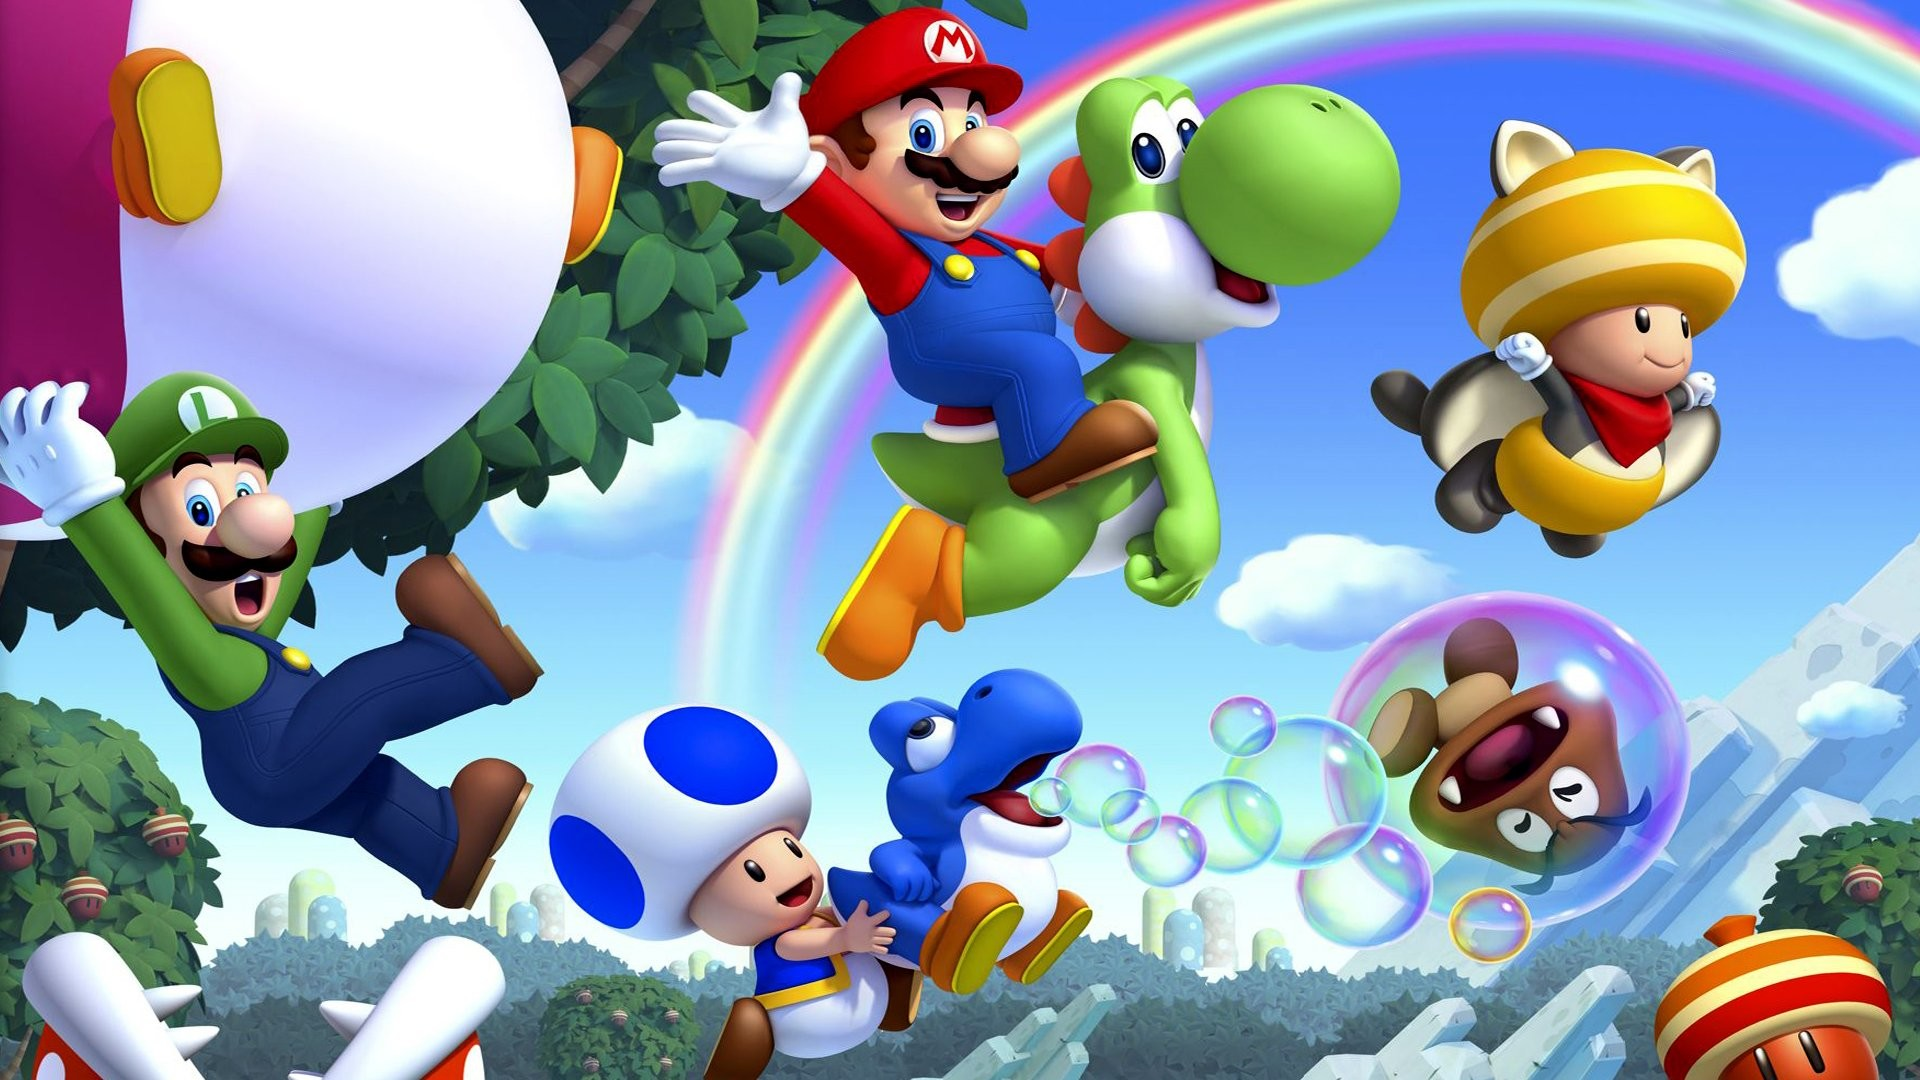 1920x1080 Explore More Wallpapers in the Super Mario Bros. Subcategory!